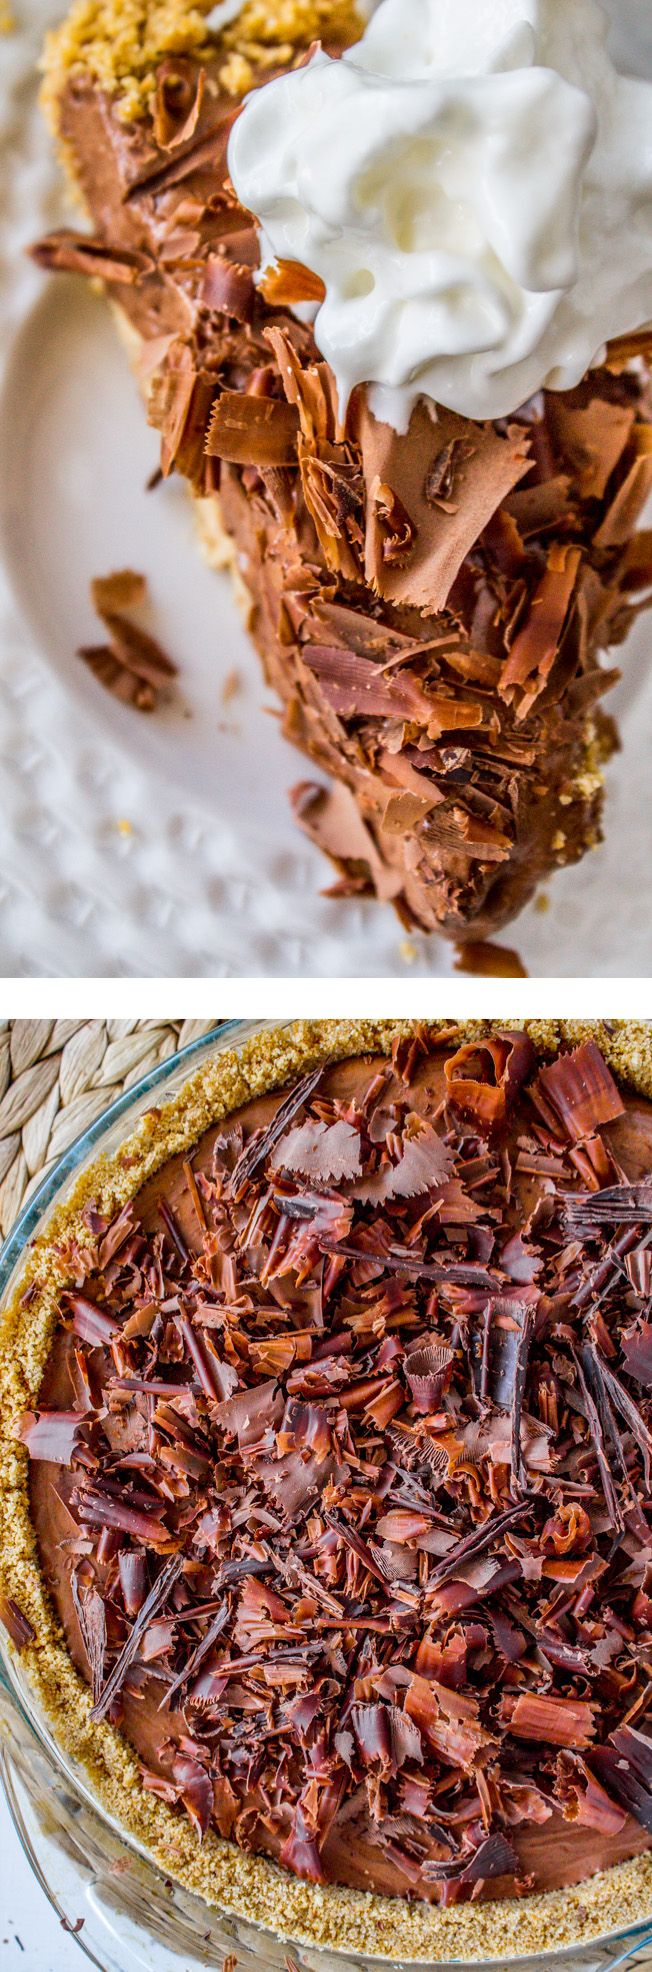 Chocolate Honey Chiffon Pie | Recipe | Its always, The o'jays and ...